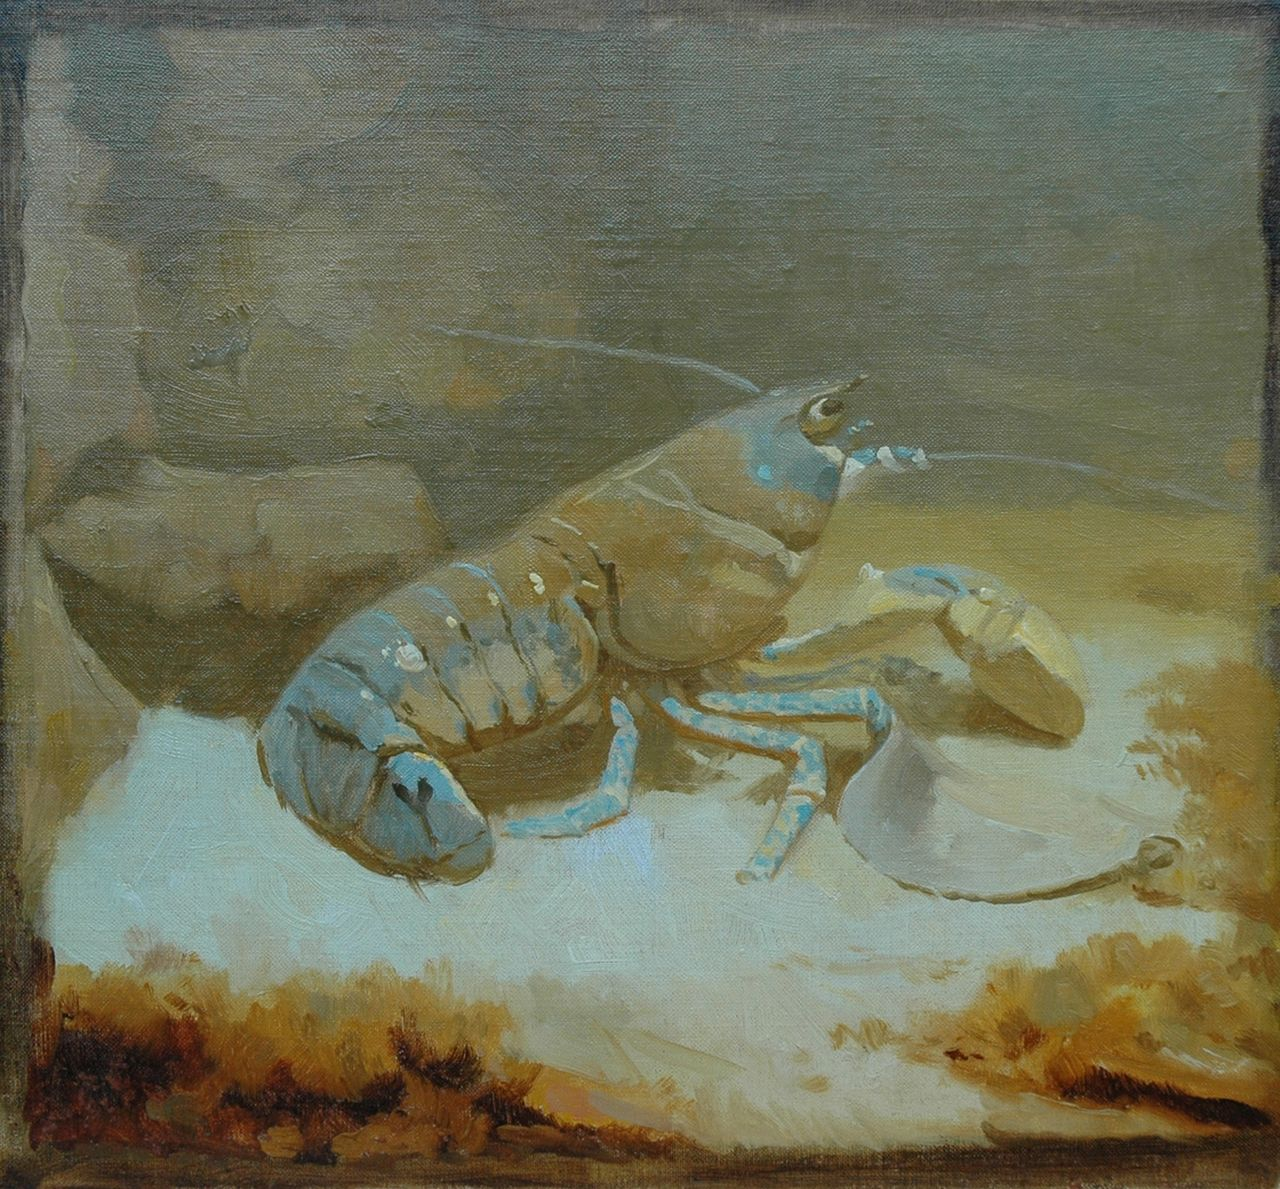 Dijsselhof G.W.  | Gerrit Willem Dijsselhof, Lobster, oil on canvas laid down on panel 25.0 x 27.4 cm